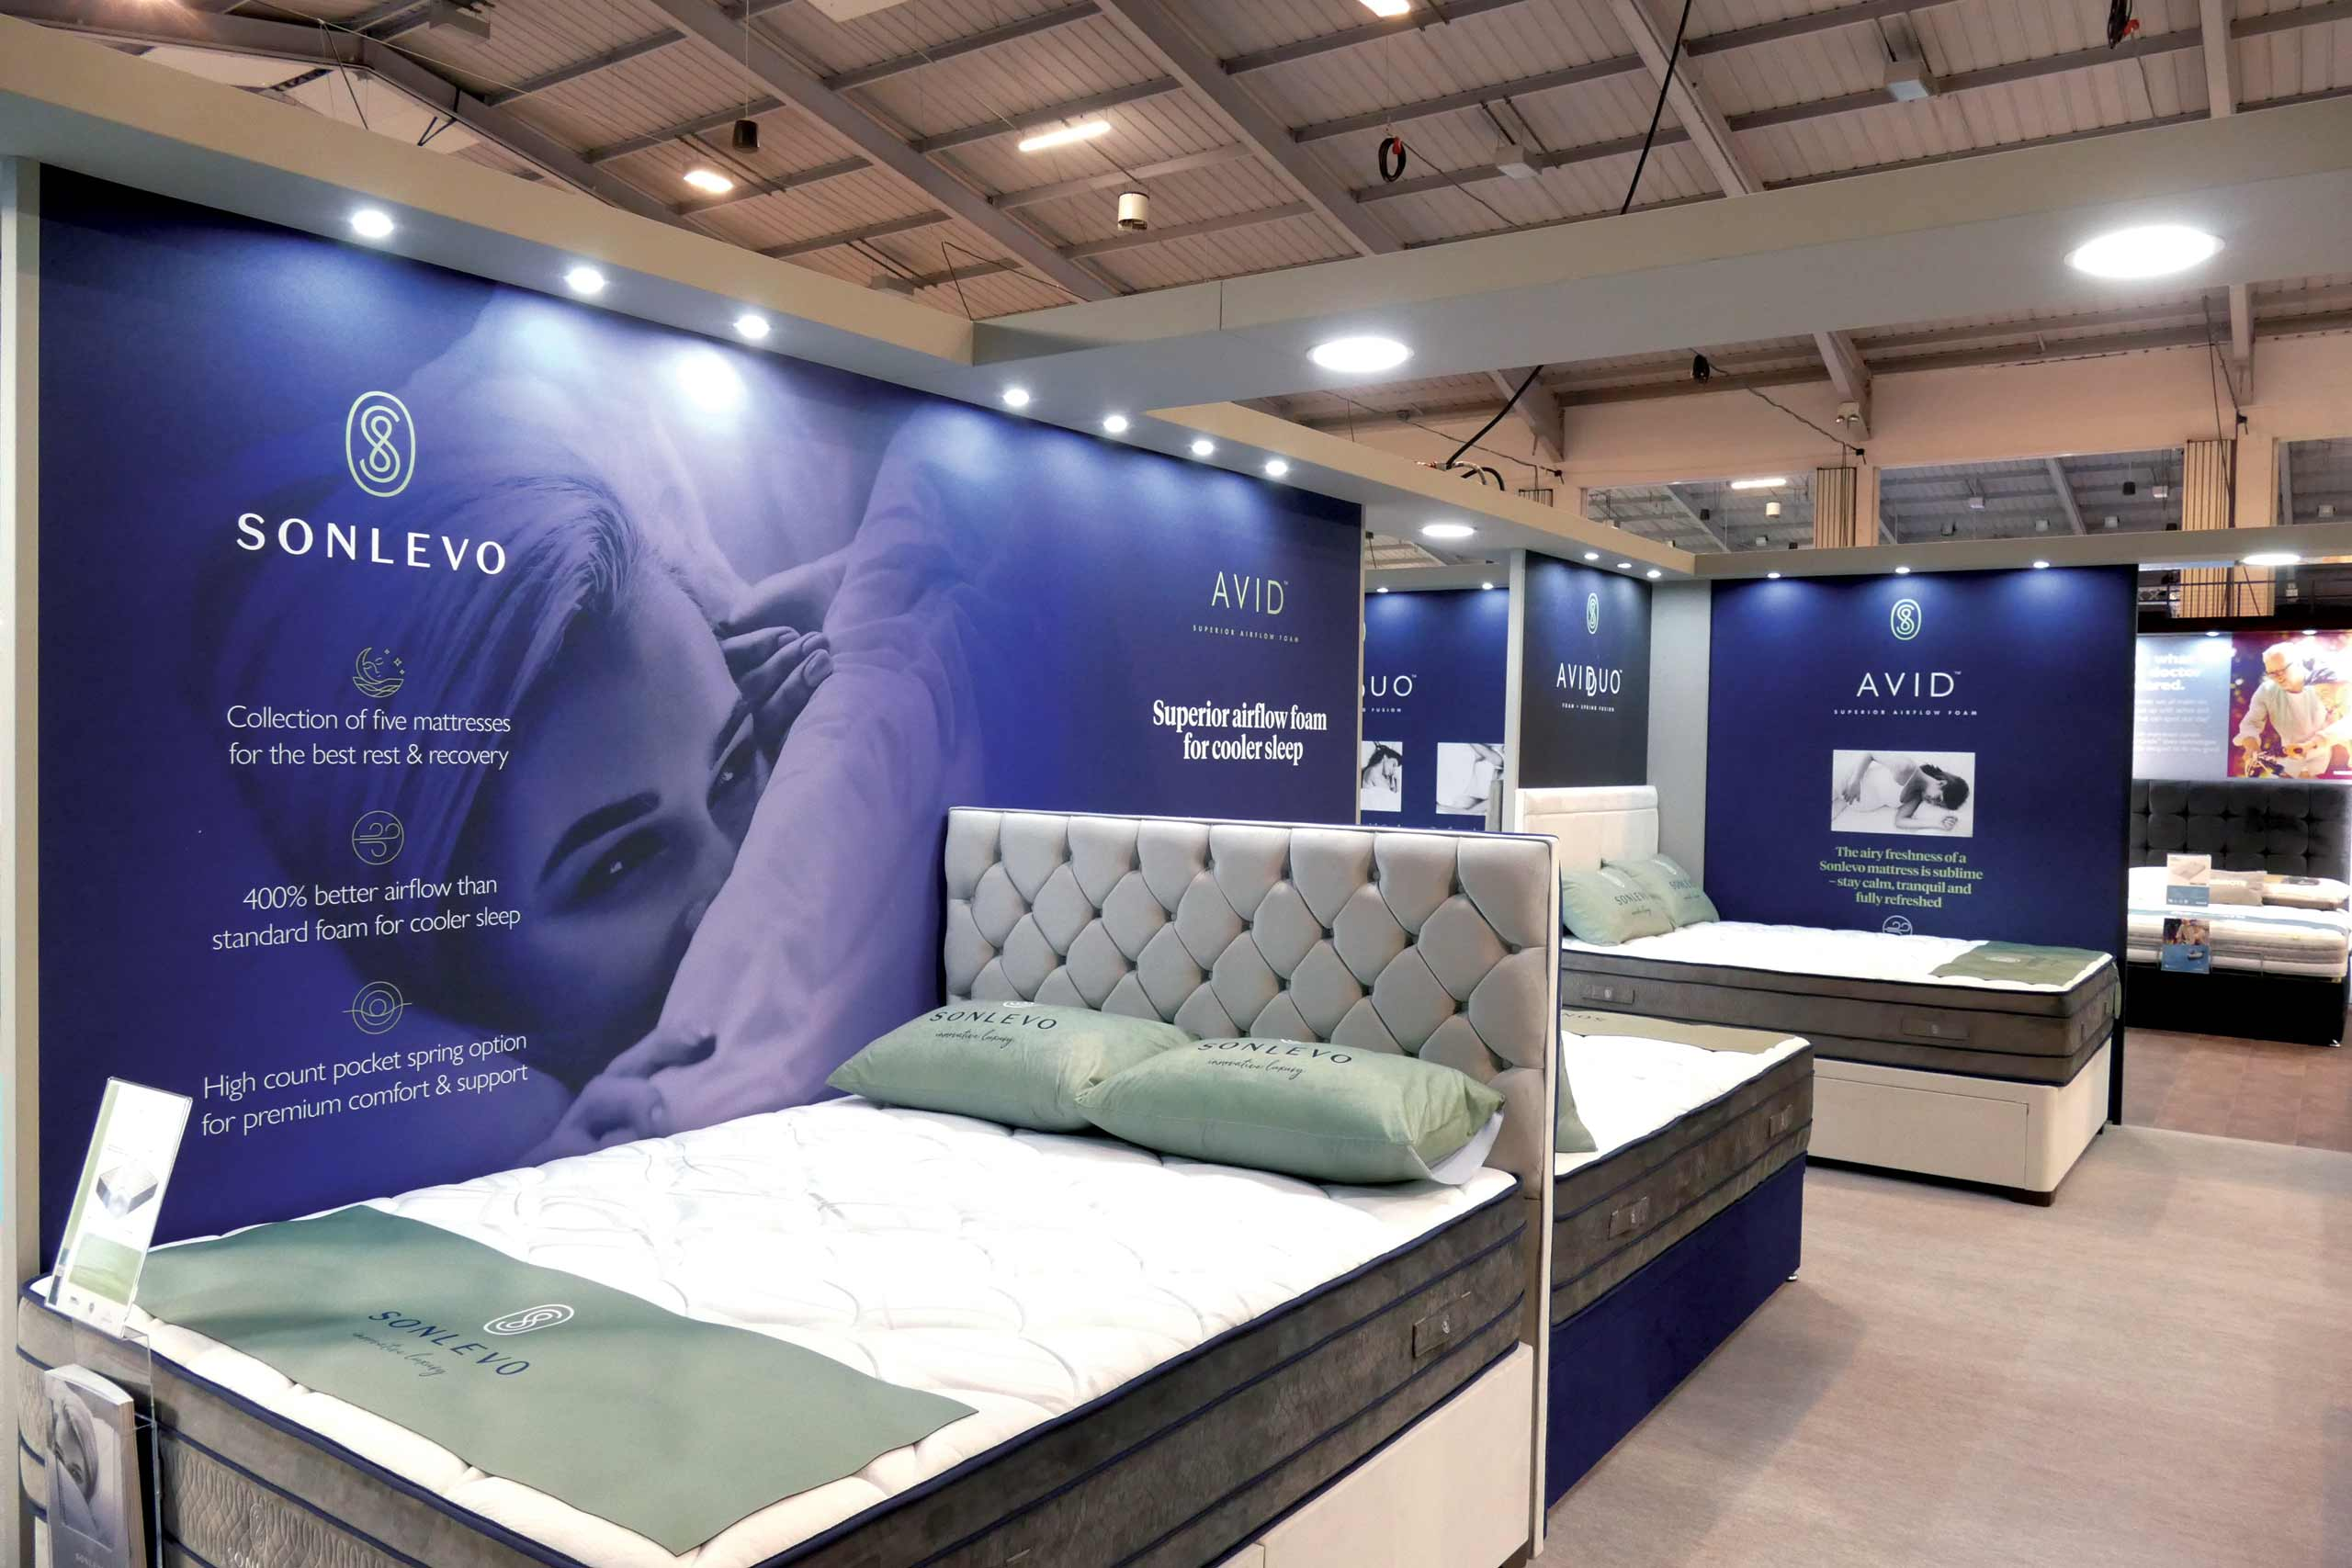 Trade Exhibition Show stand with Sonlevo by Zeke Creative